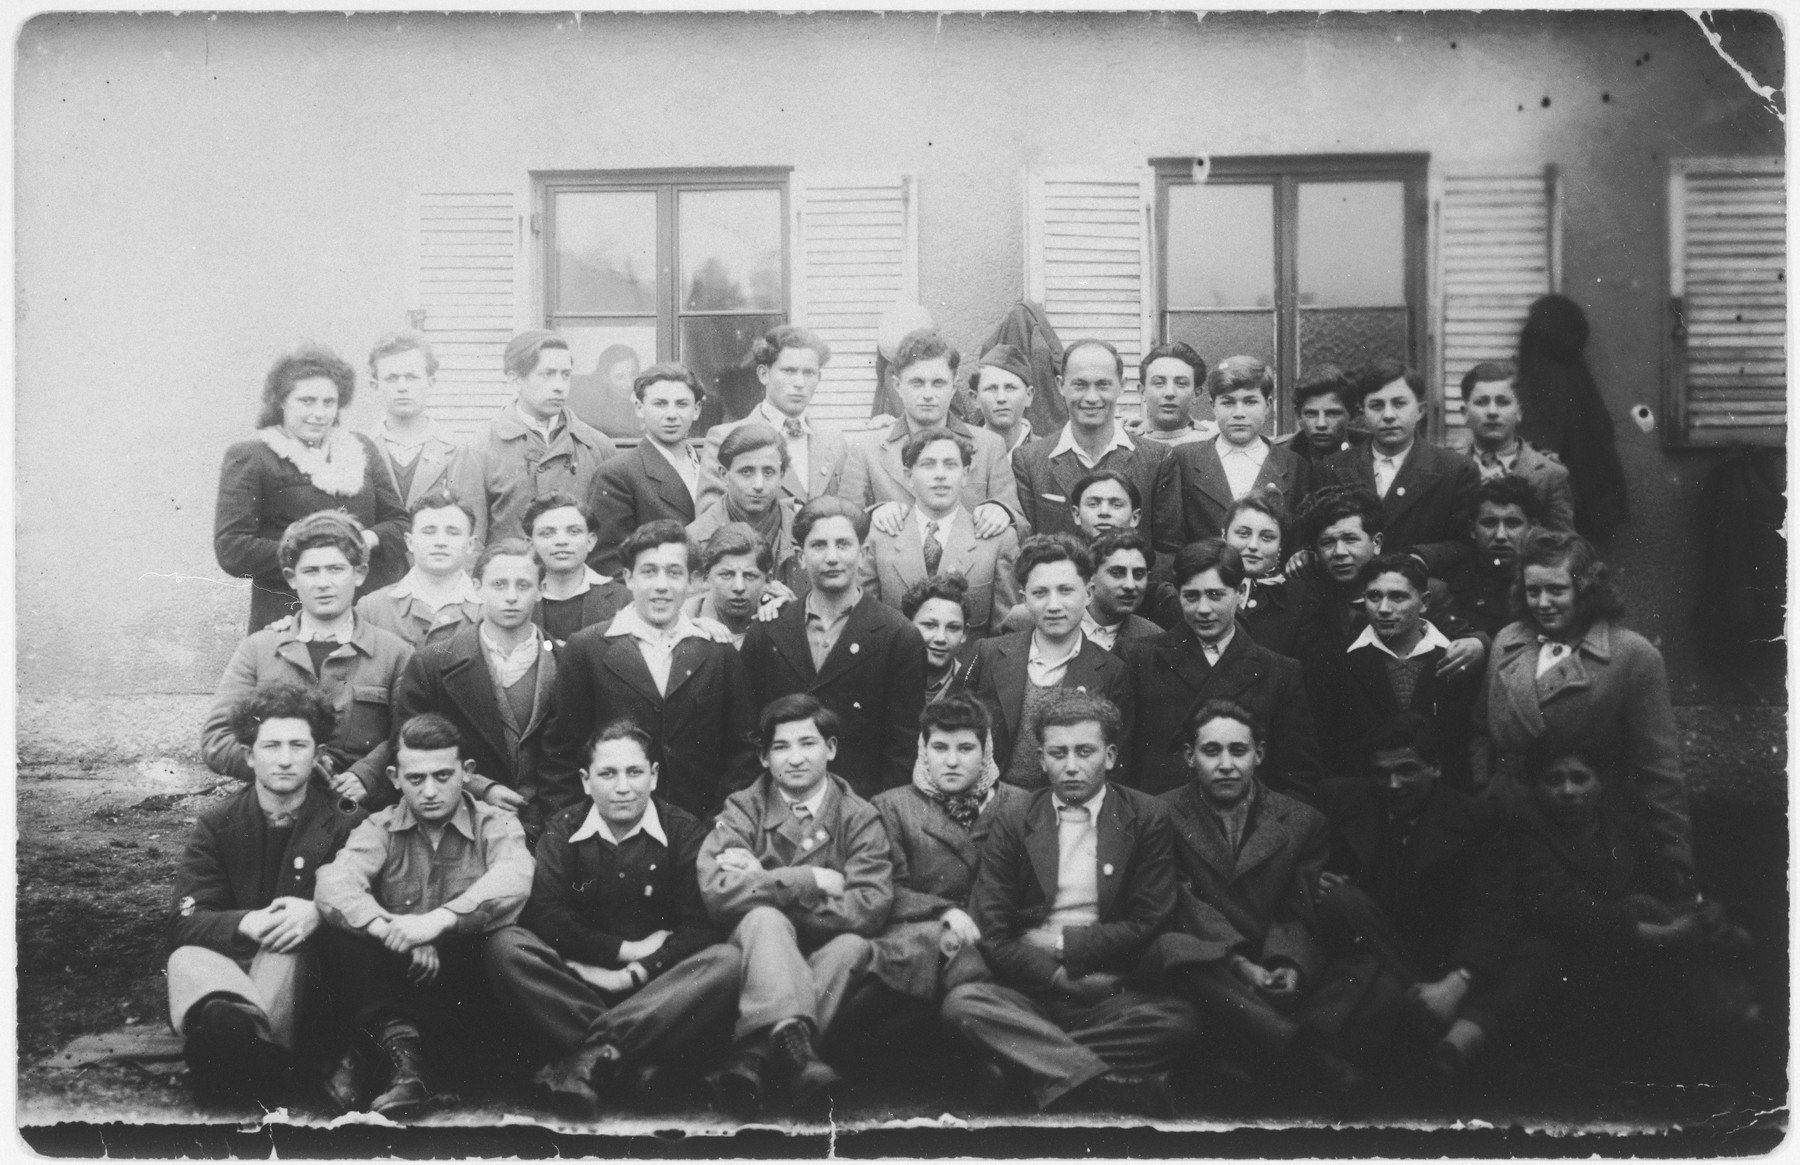 Group portrait of children from the Kloster Indersdorf children's home.  Among those pictured are Erwin Farkas, Fred Stern, Walter Hahn, Berek Feldbaum, Adolph Weiss, Druecker and Michael Roth.  Genia Edlerman (Jean Sugar) is seated in the center, front row. To her right is her brother, Nechemia Edlerman. Roman Kniker is directly in center (fourth person from both the left and right sides) in the front row. Niderman is the first person on the left in the second row. Herbert Hahn is seated next to him. Erwin Farkas is third from the right in the second row. Avraham Leder is the first person on the right in the third row. Naftali Steinberg is seated next to him. Walter Hahn is the first person from the left in the third row (center of picture where row begins). Michael Roth is the fourth person from the right in the last row. Jakub Kerker is the third person from the left in the last row. Ivan Kisz is the fourth person from the left in the last row.  Alfons Weber is also pictured.